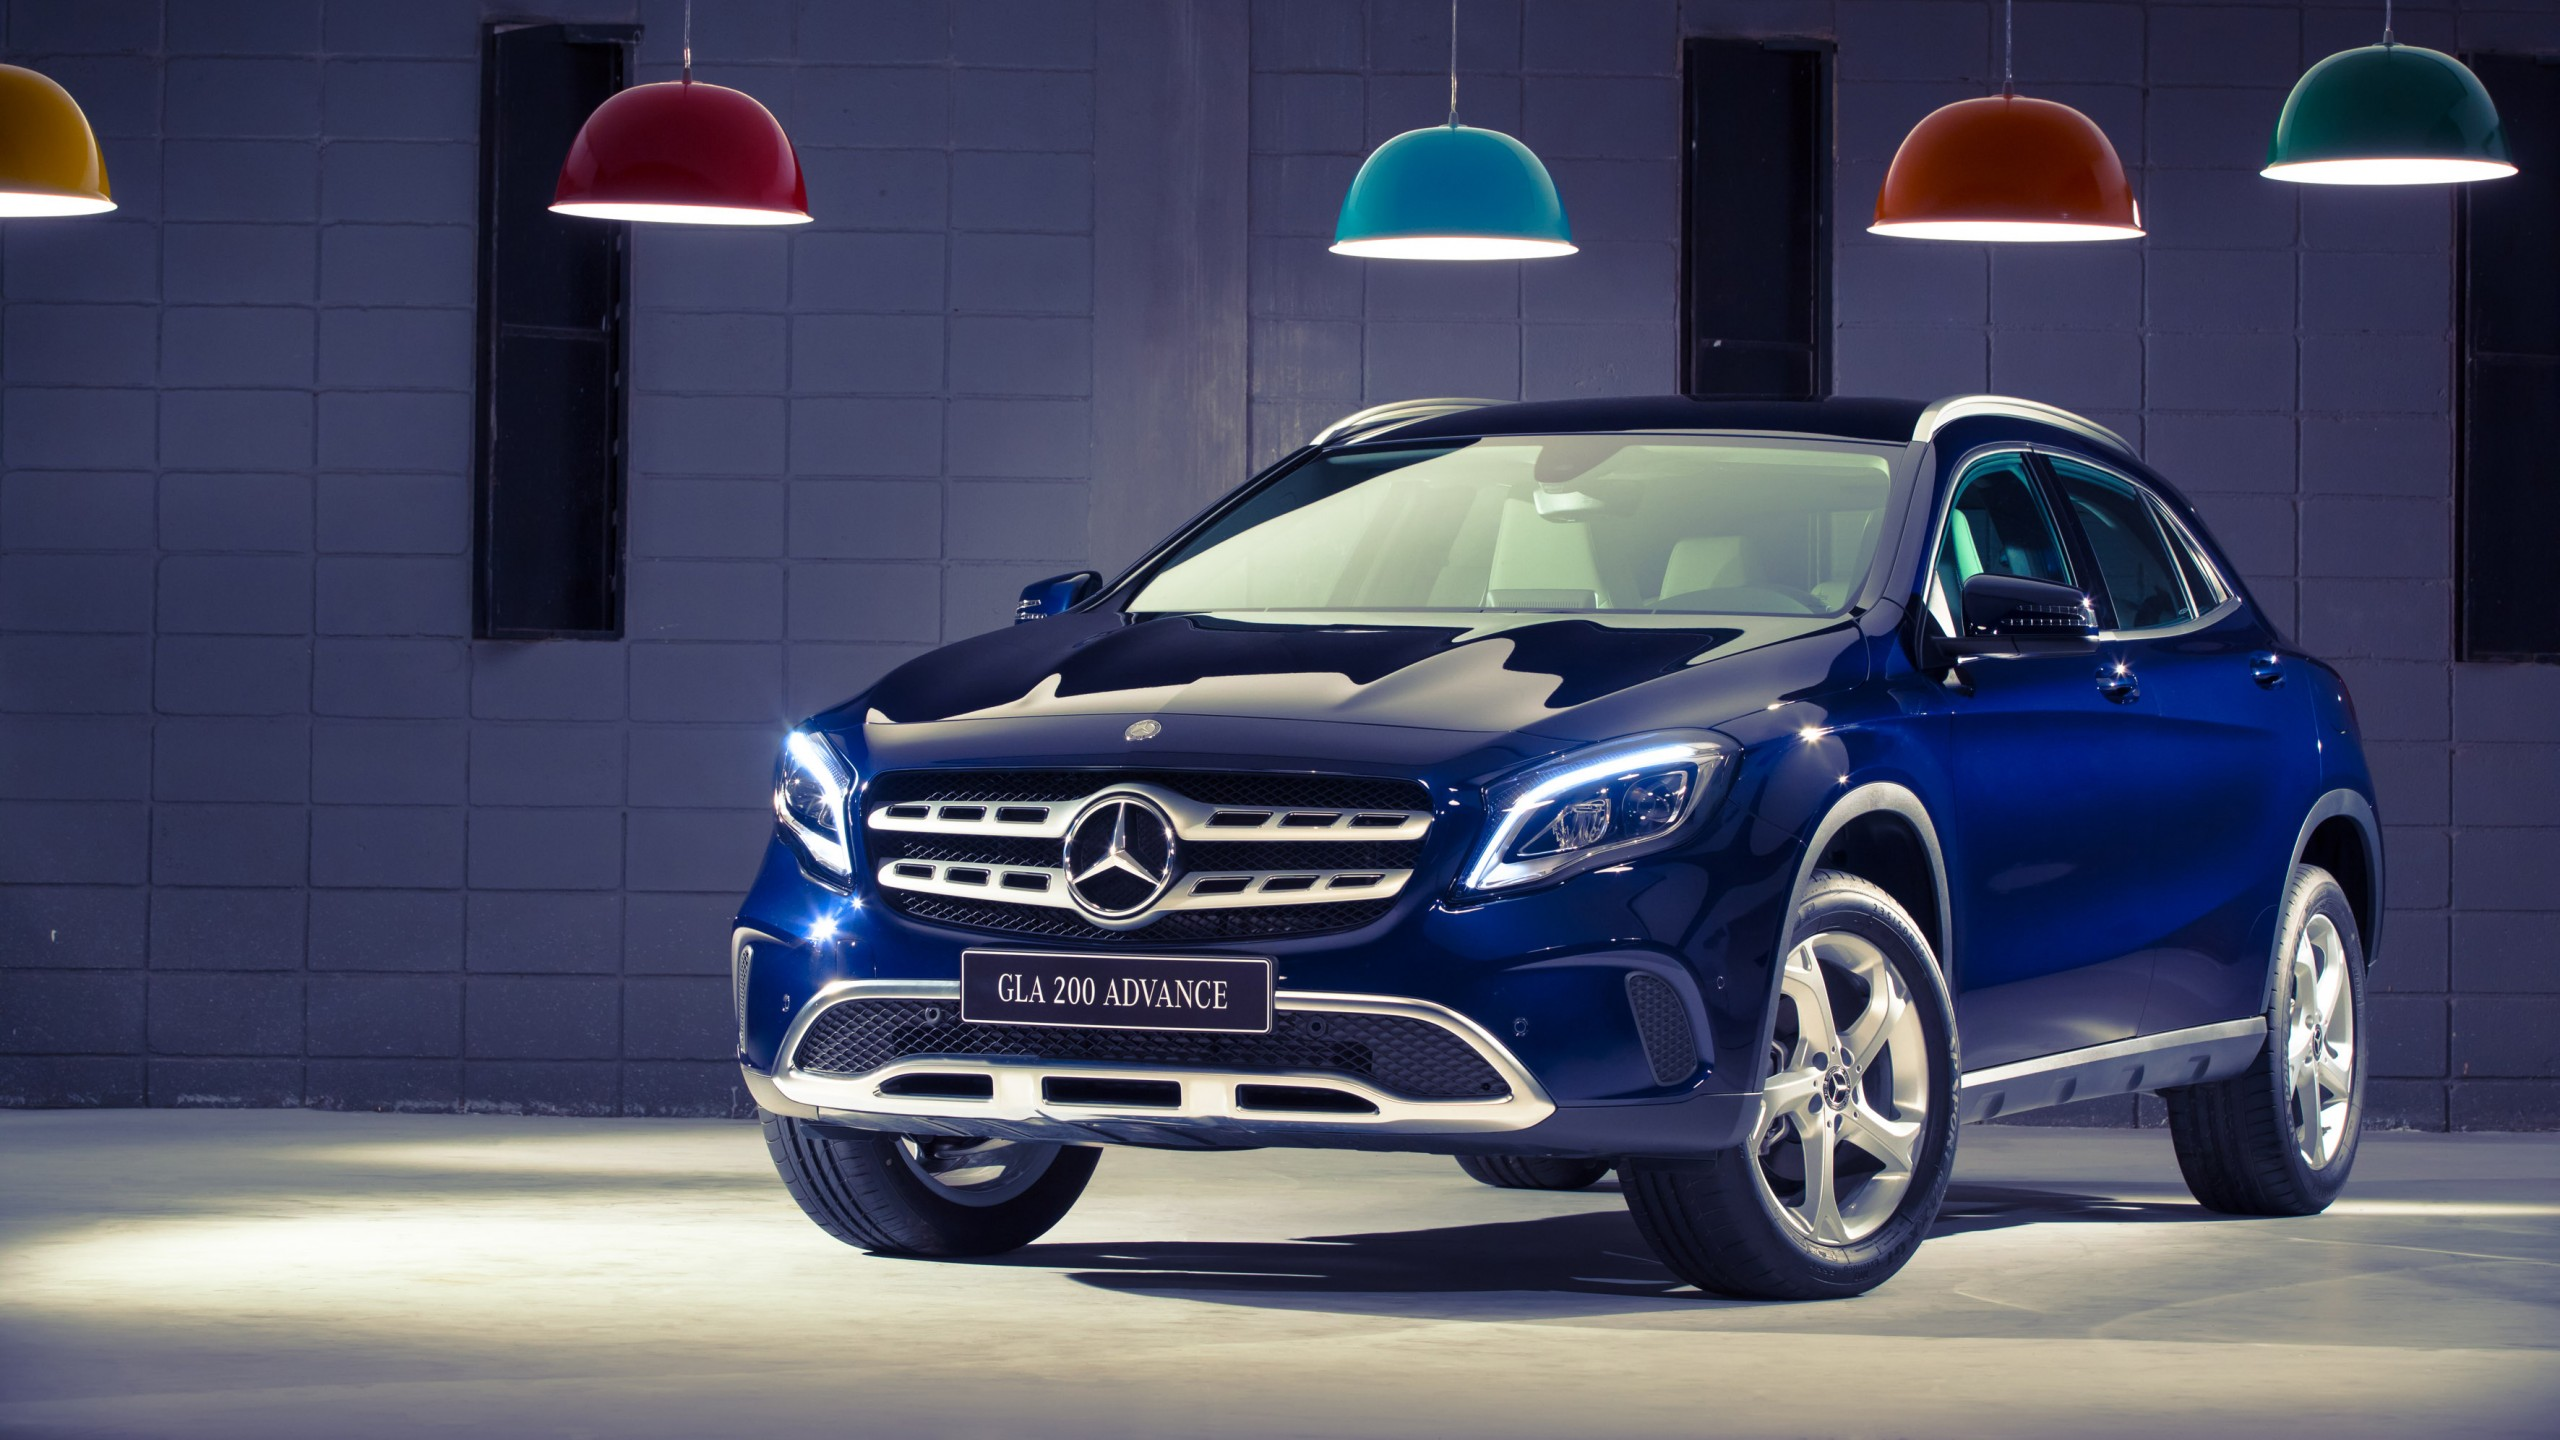 2017 Mercedes Benz GLA 200 Wallpaper HD Car Wallpapers